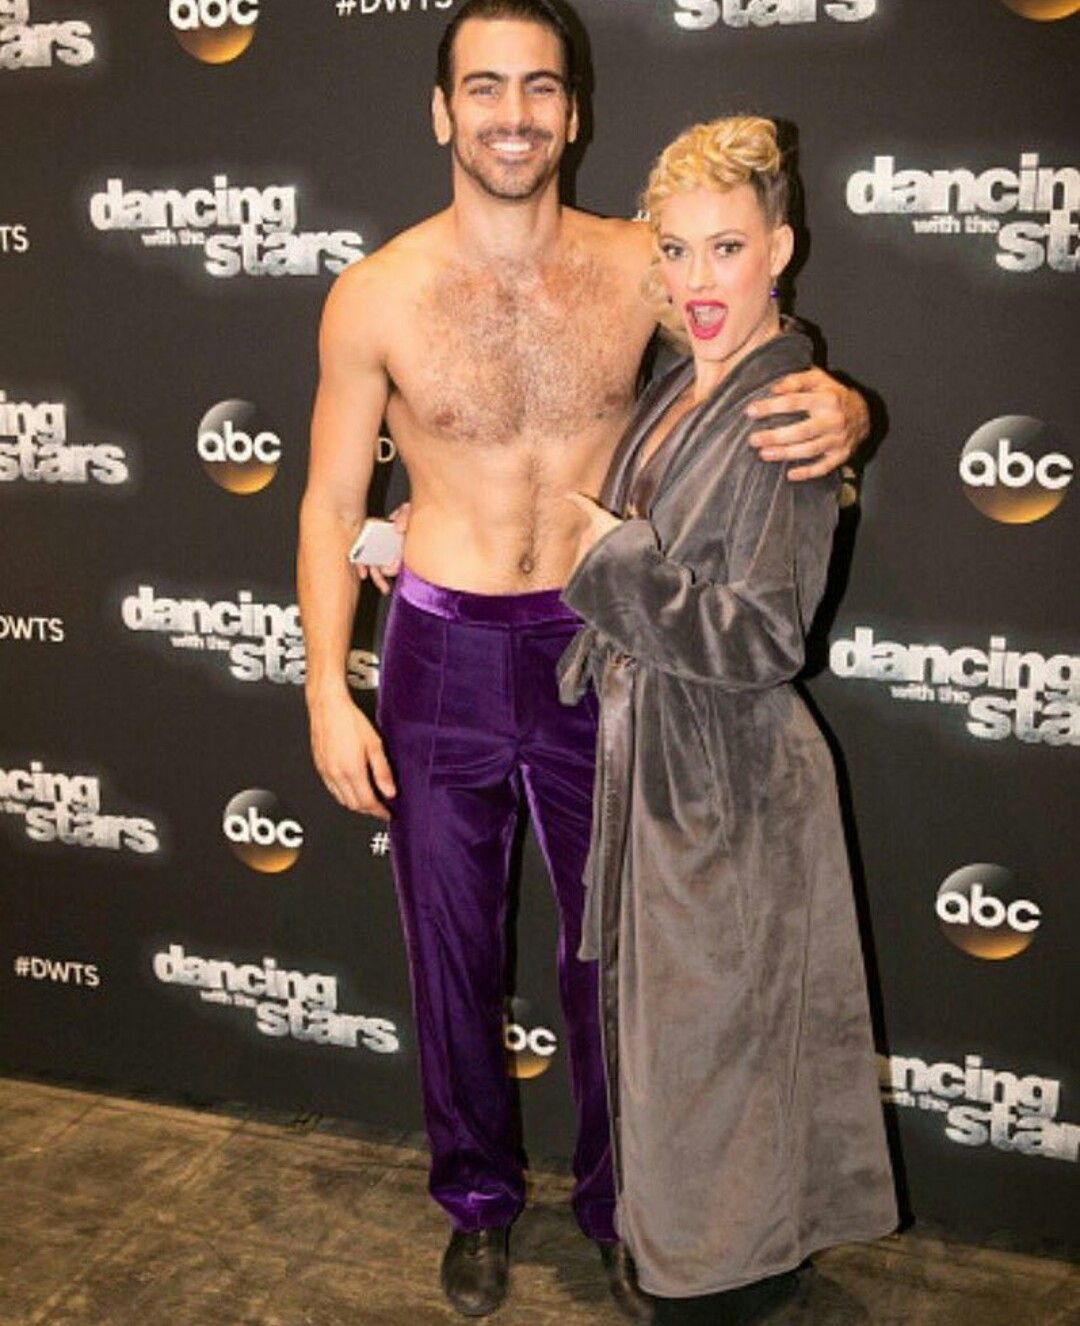 Pin By William See On Superman Hirsute Nyle Dimarco Dancing With The Stars Dwts